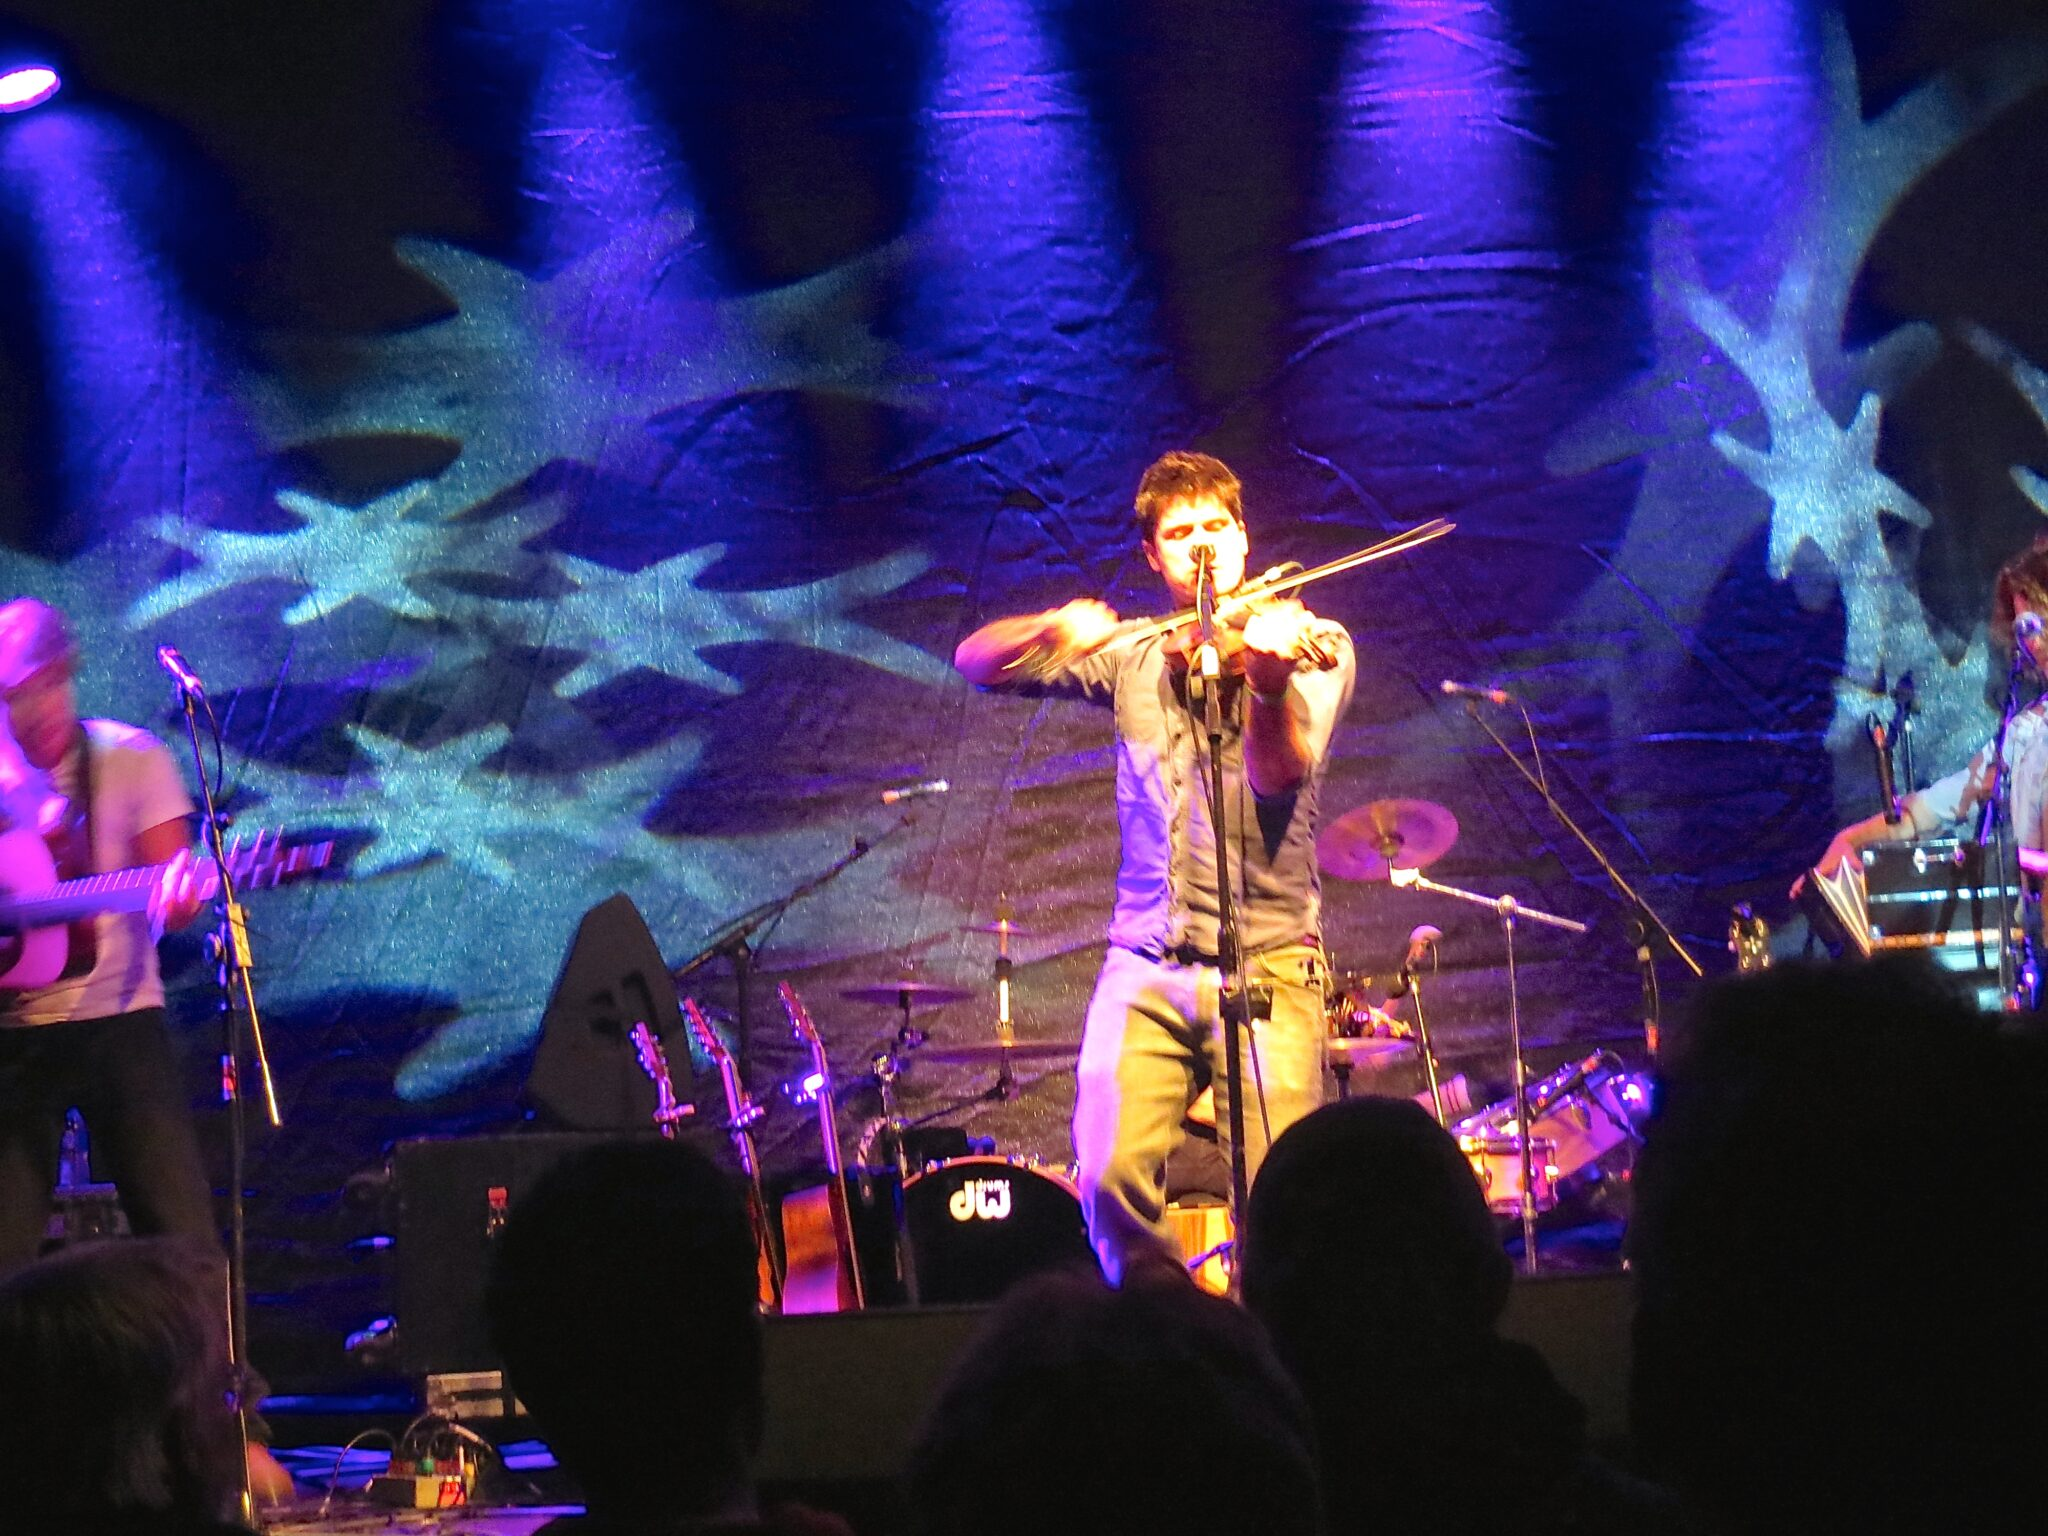 Seth Lakeman at Towersey Festival